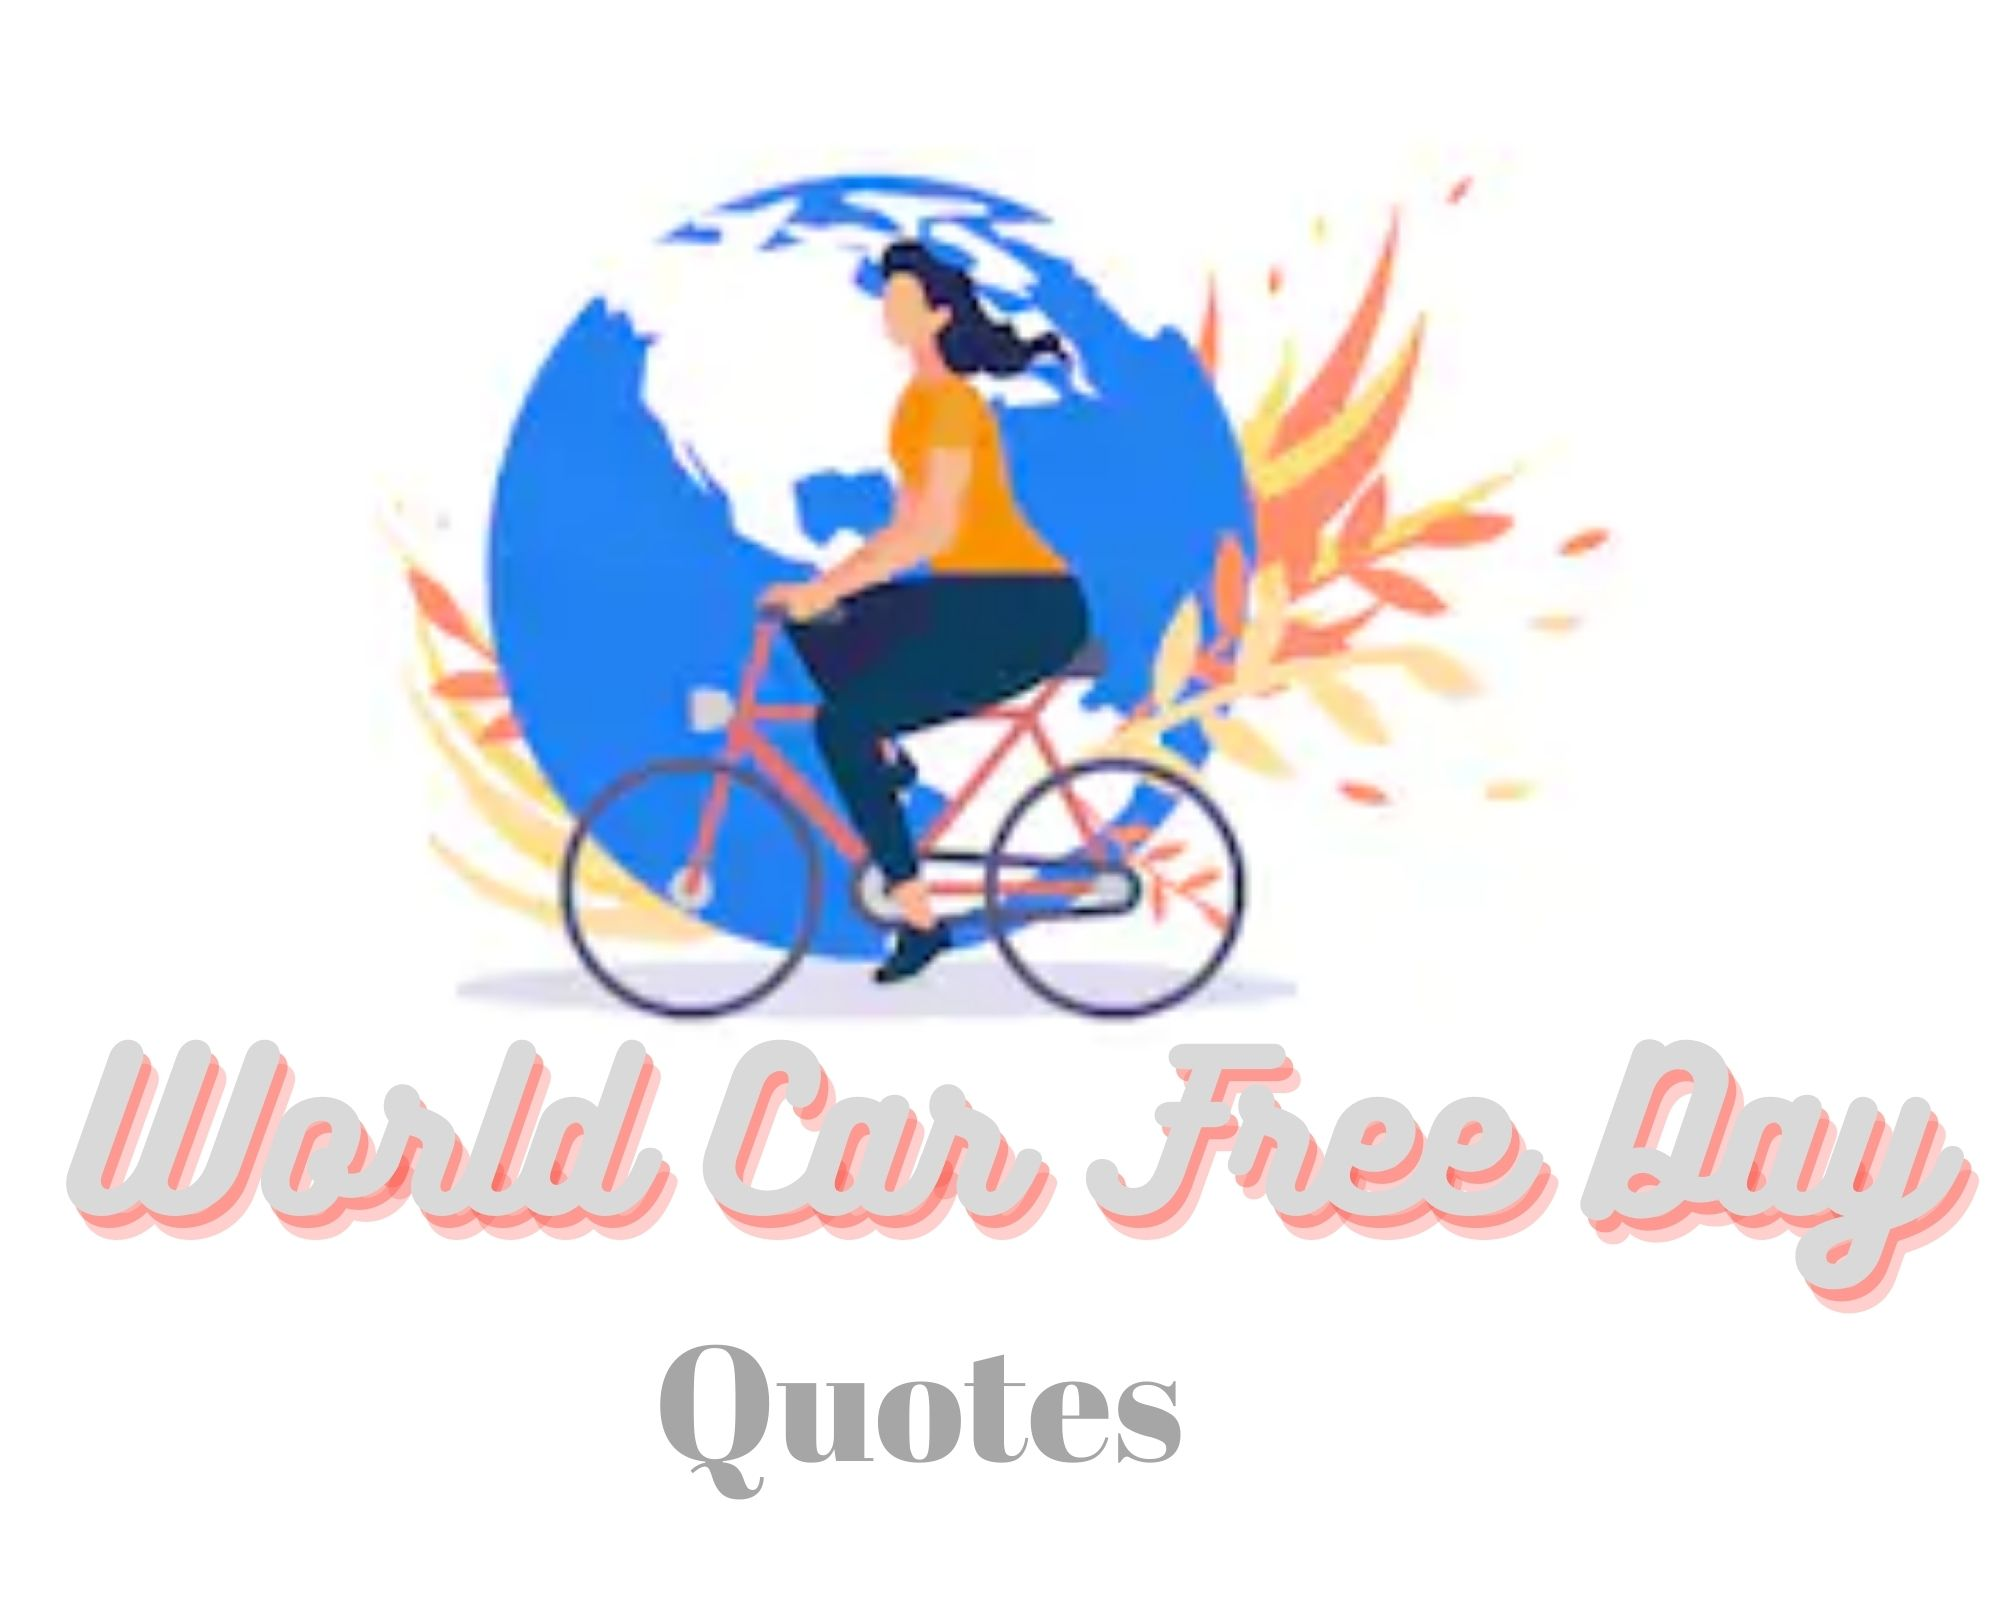 World Car Free Day Quotes